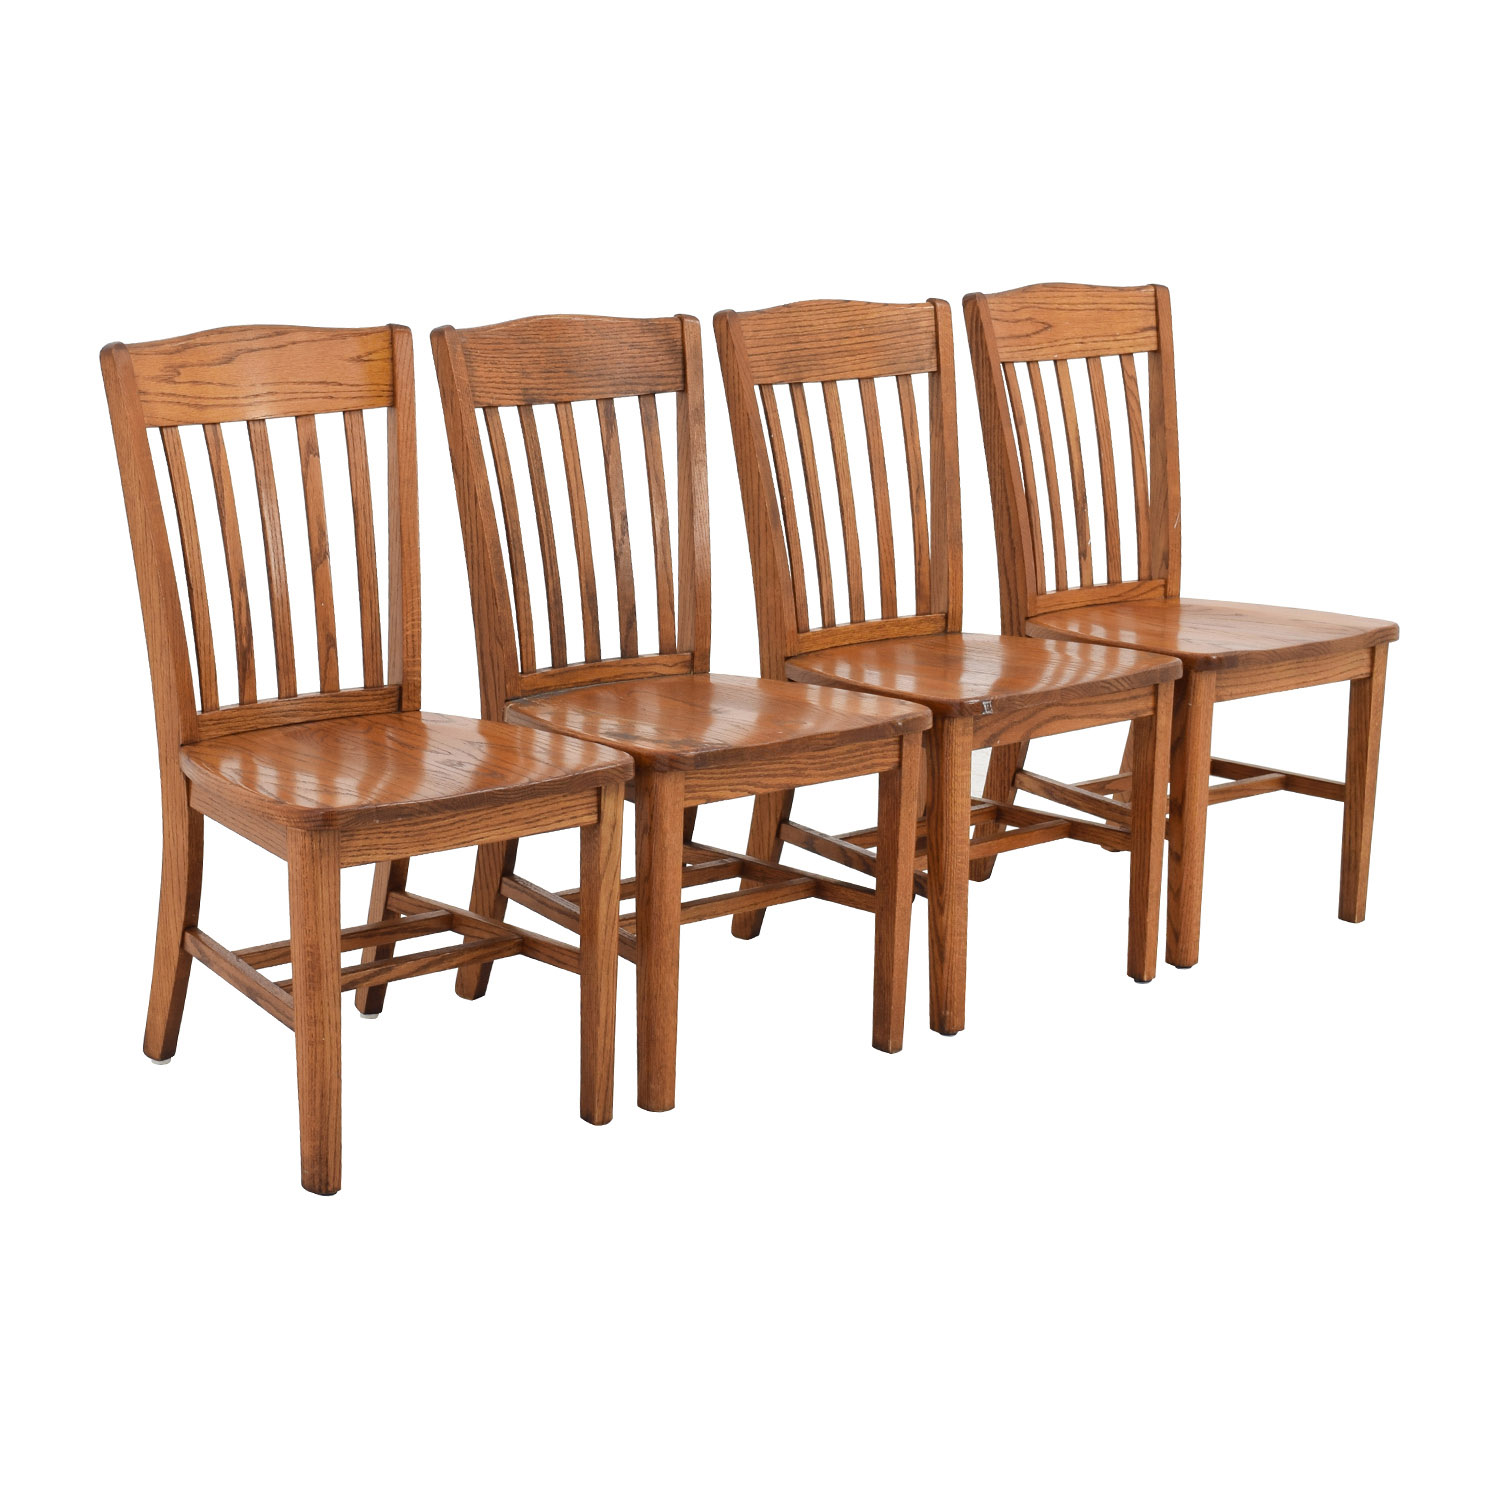 Slatted Back Chairs ~ Off four brown slat back wood chairs